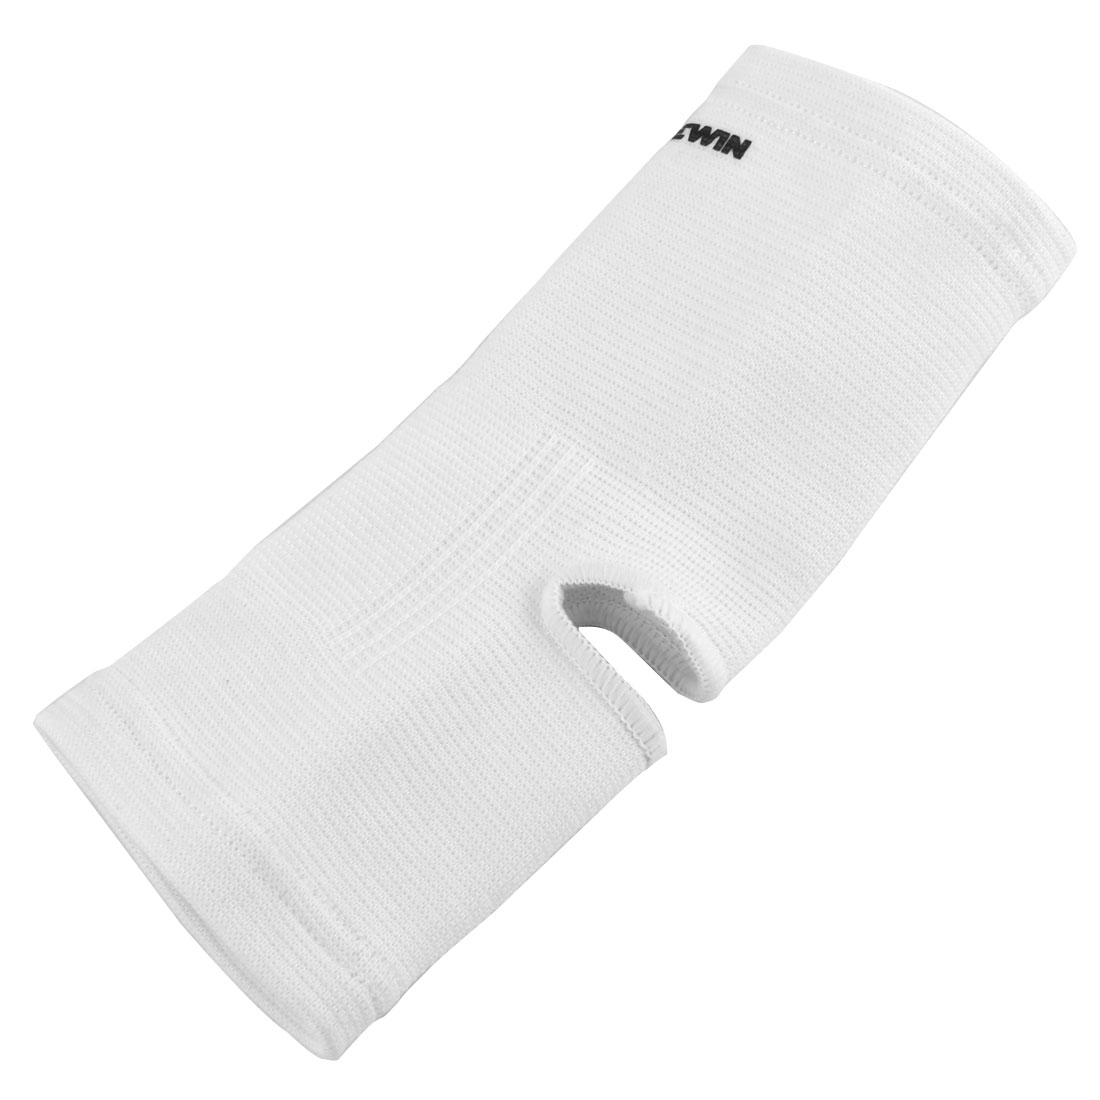 White Elastic Foot Ankle Support Sports Protector